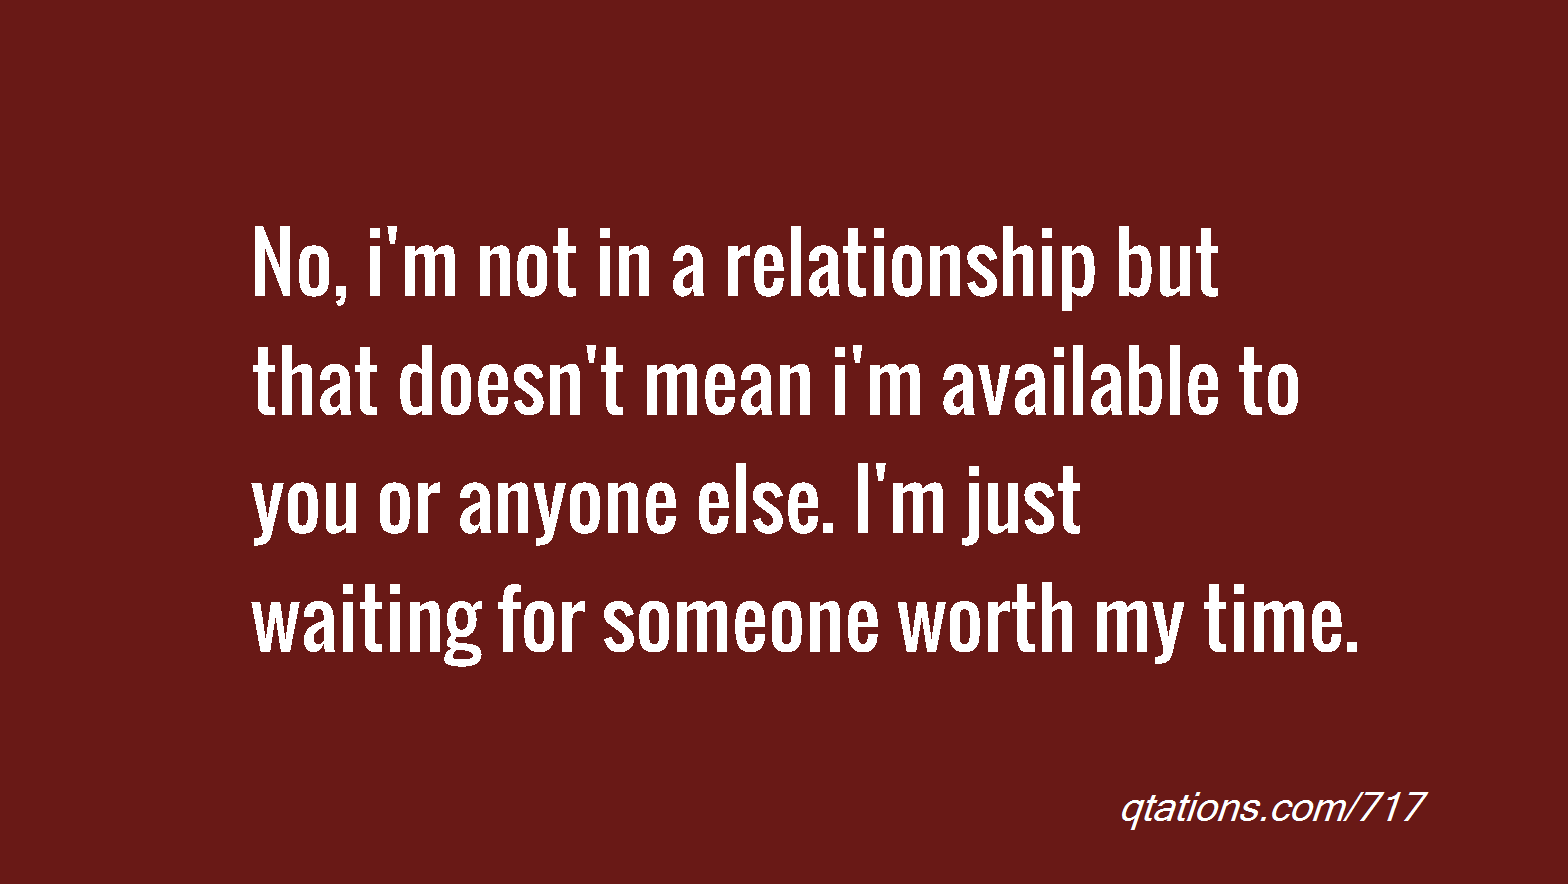 Quotes About Waiting For Someone You Love: Waiting For Someone Quotes. QuotesGram